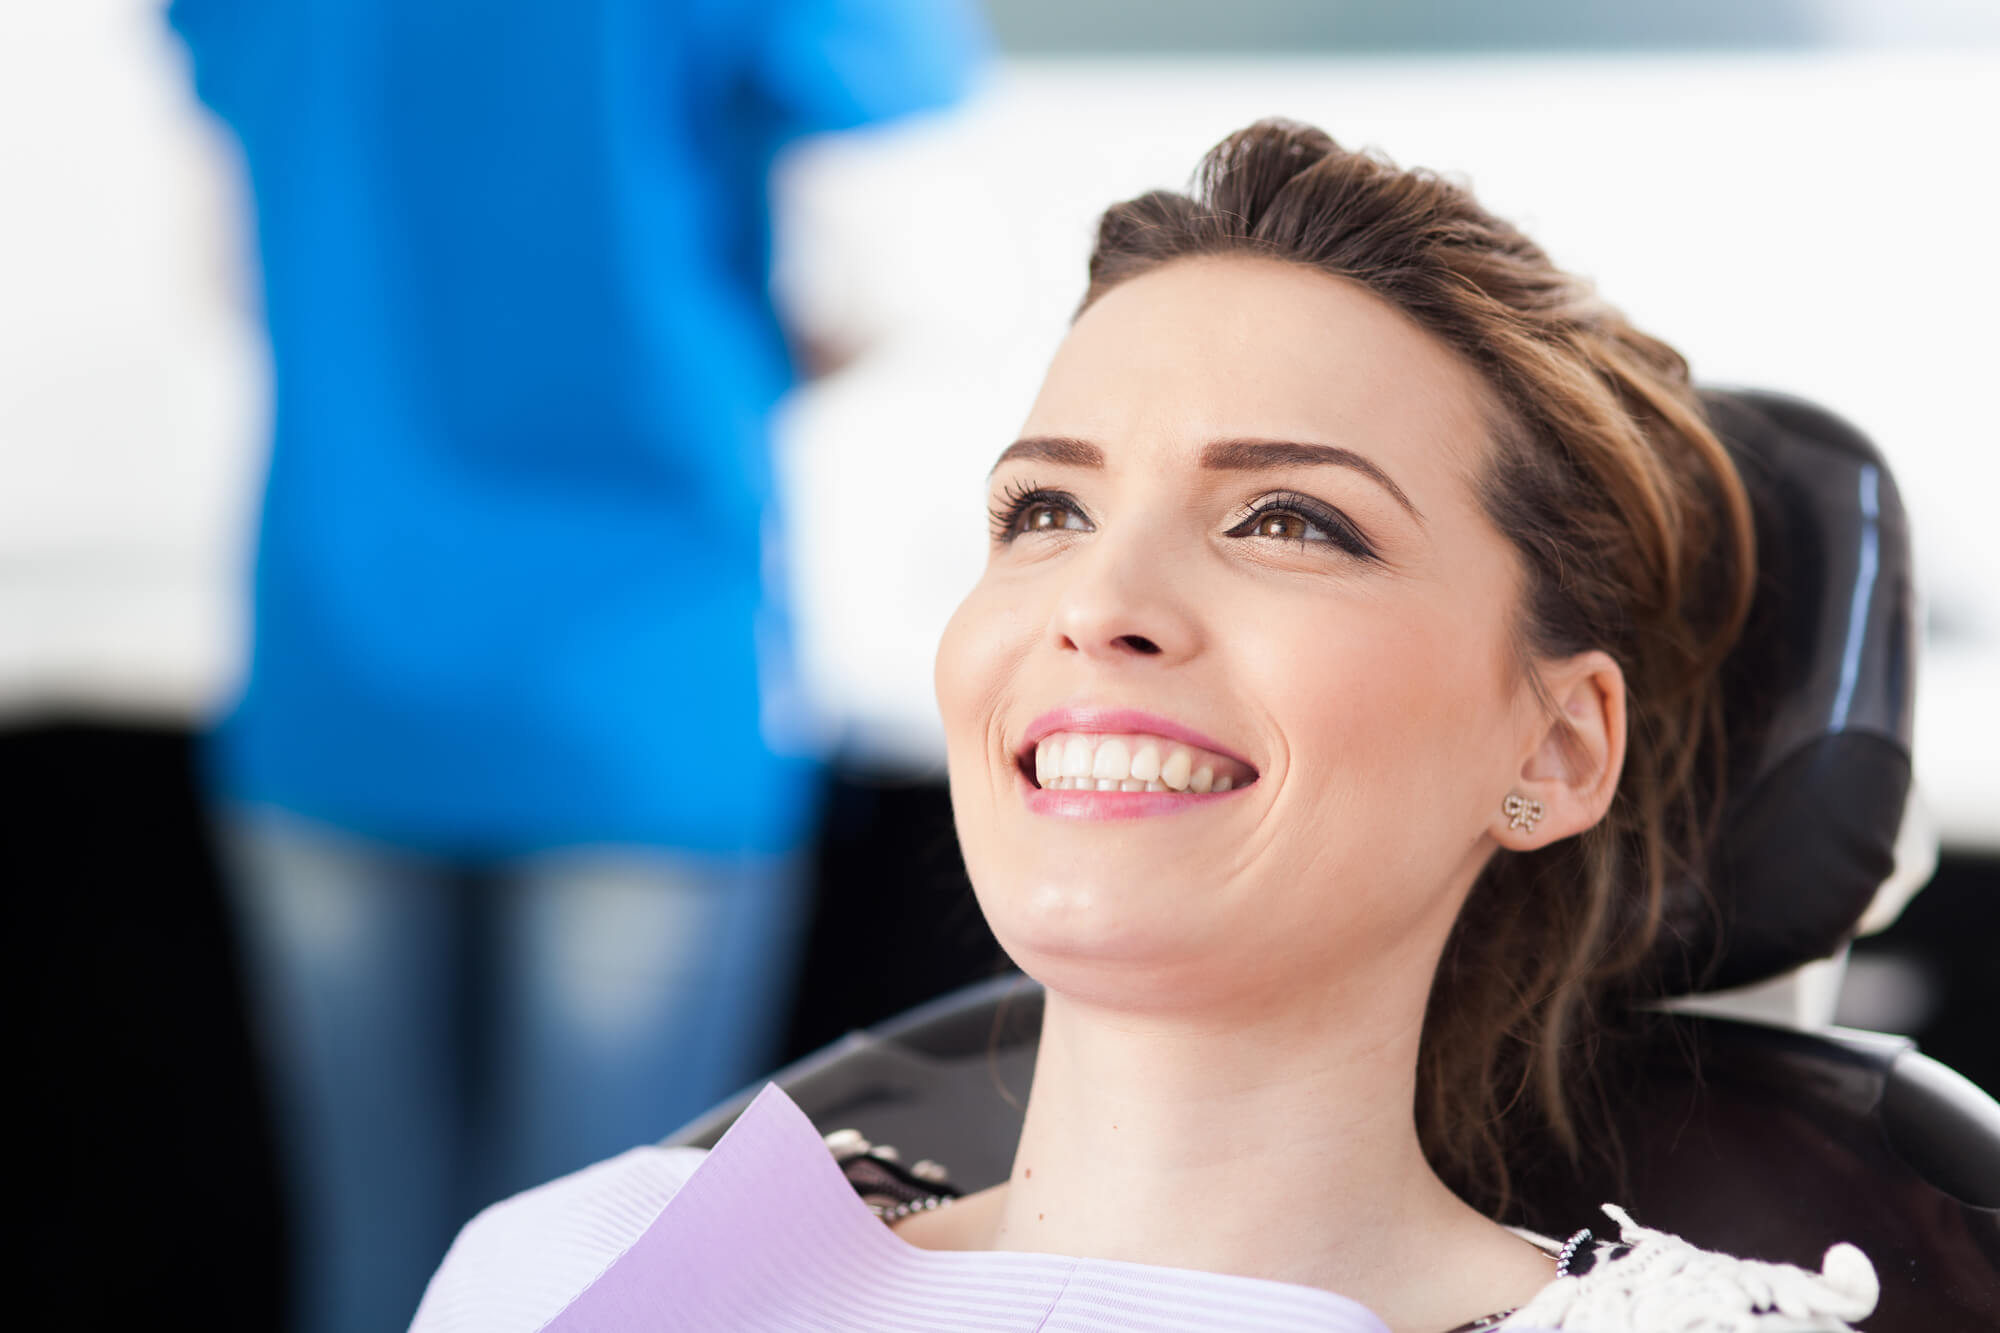 who offers the best dental implants sunny isles FL?